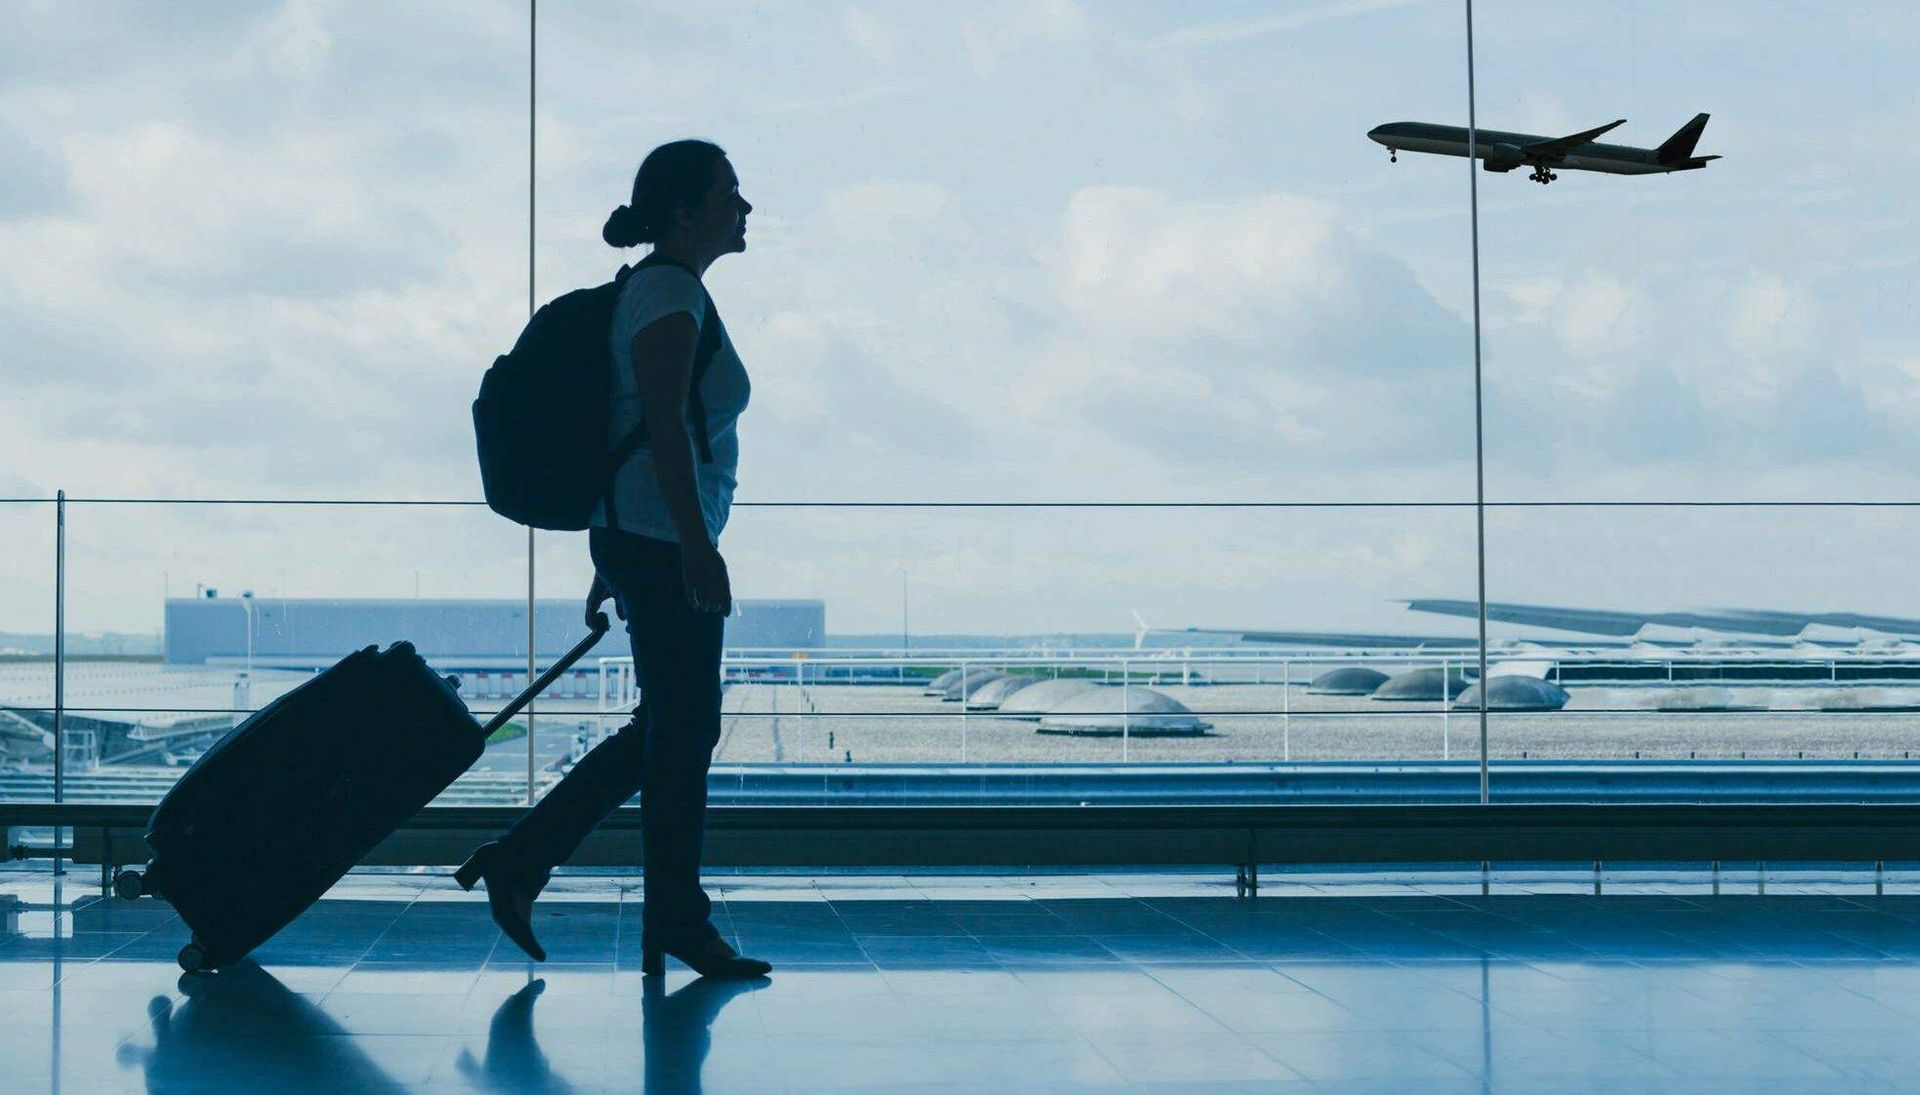 Photo of a travel in silhouette walking in an airport carrying luggage while an airplane flies in the sky